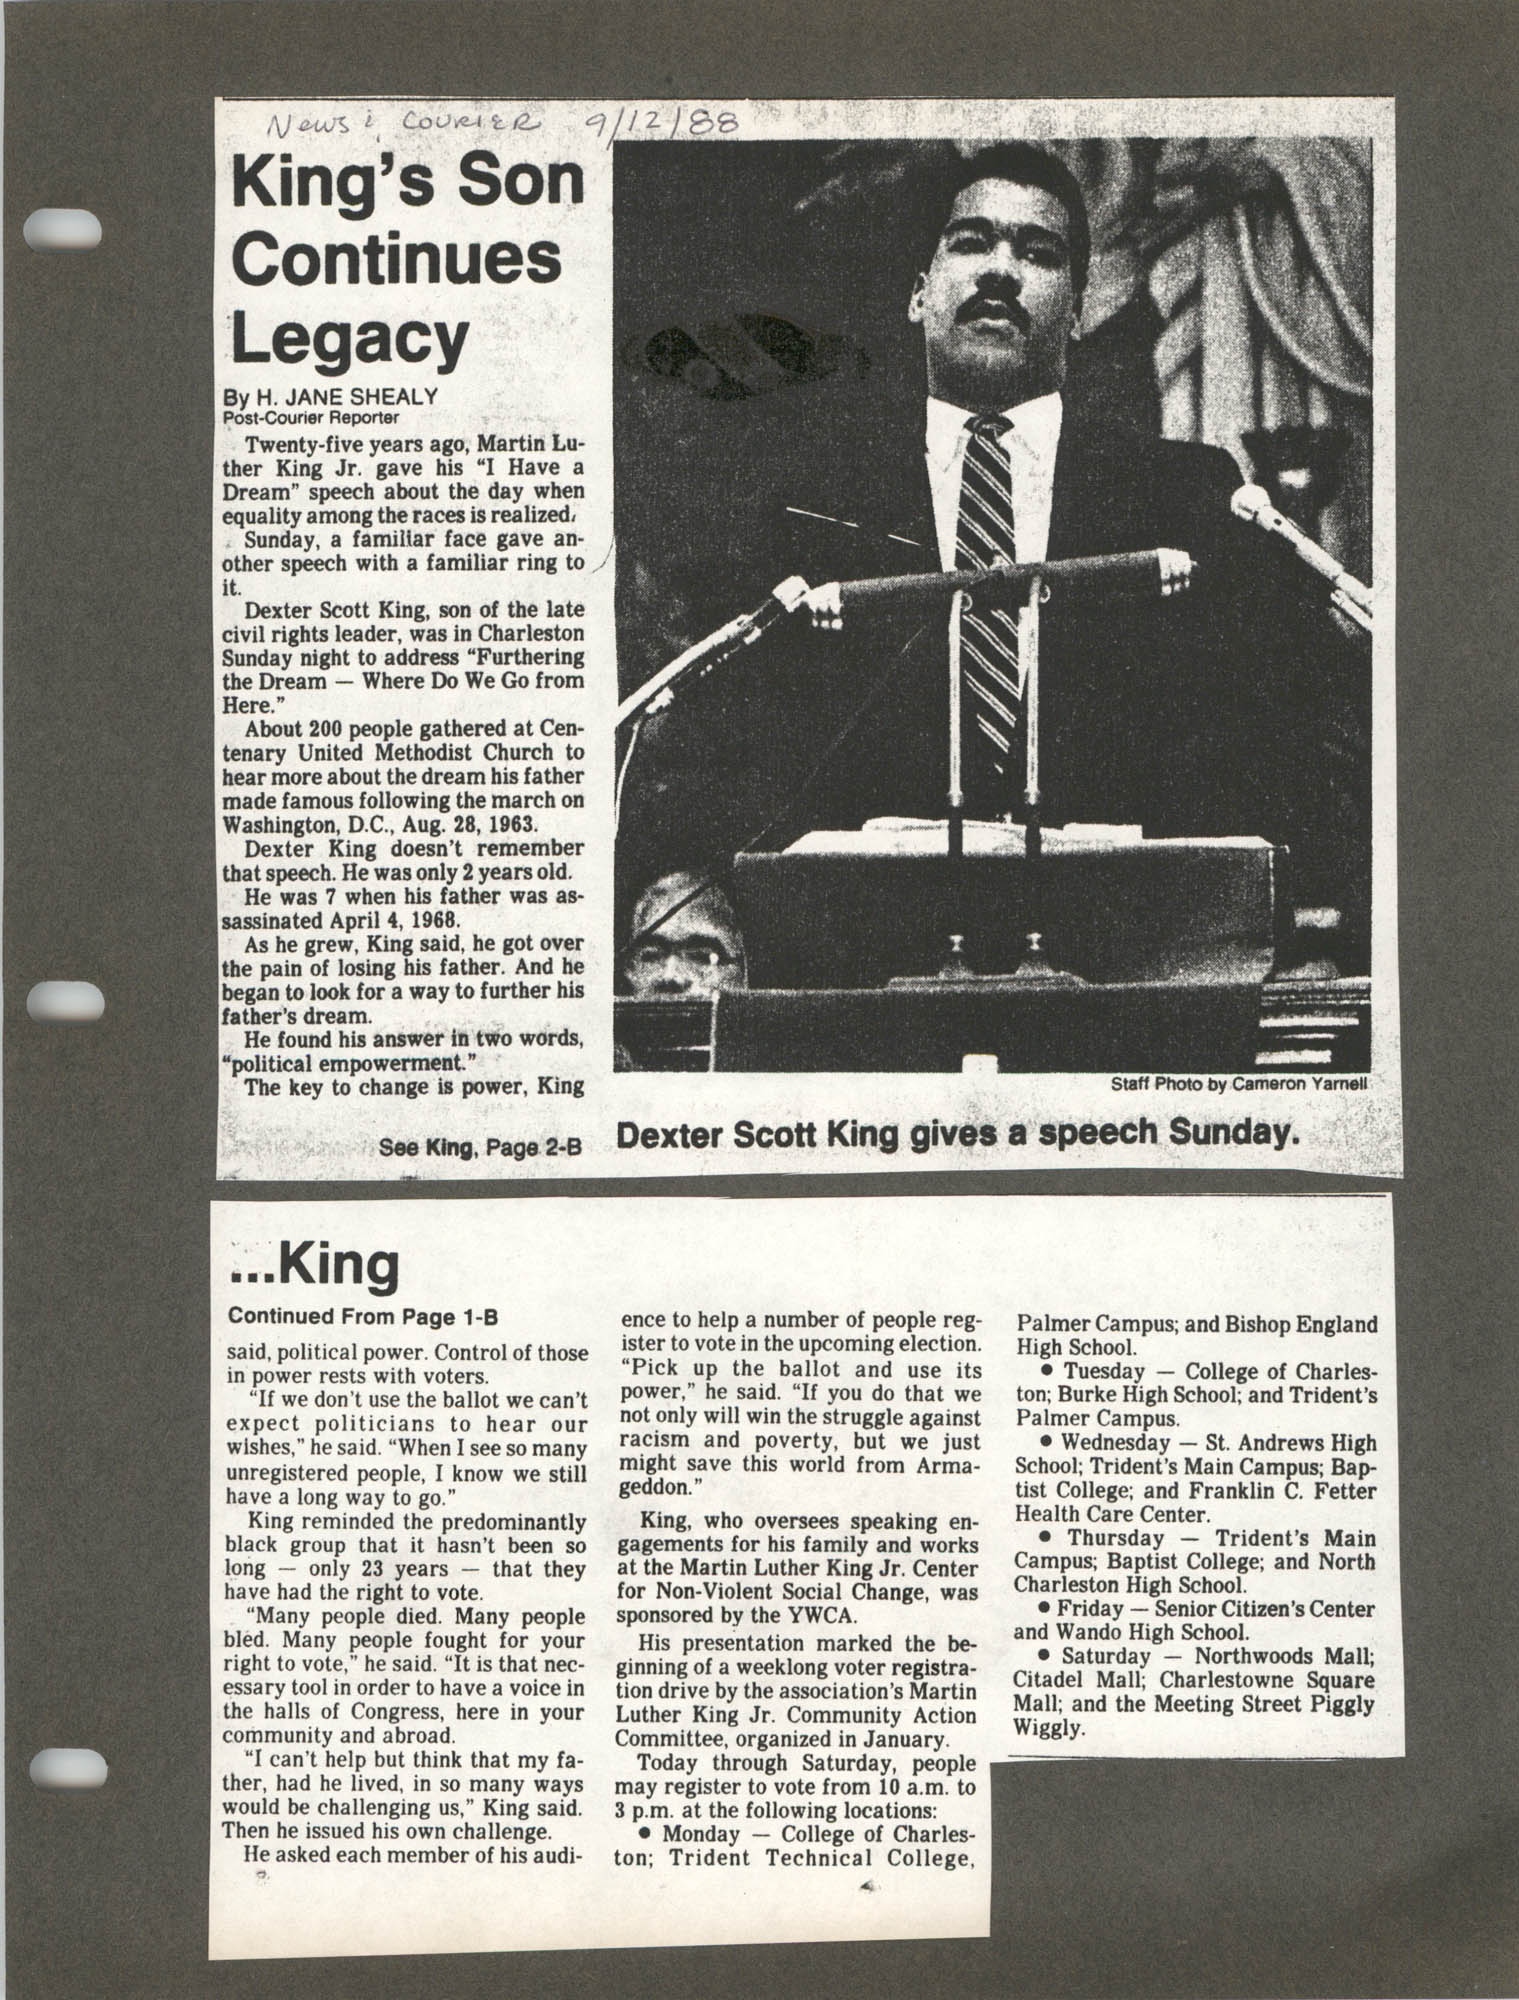 Martin Luther King, Jr. Scrapbook, 1988, Page 12